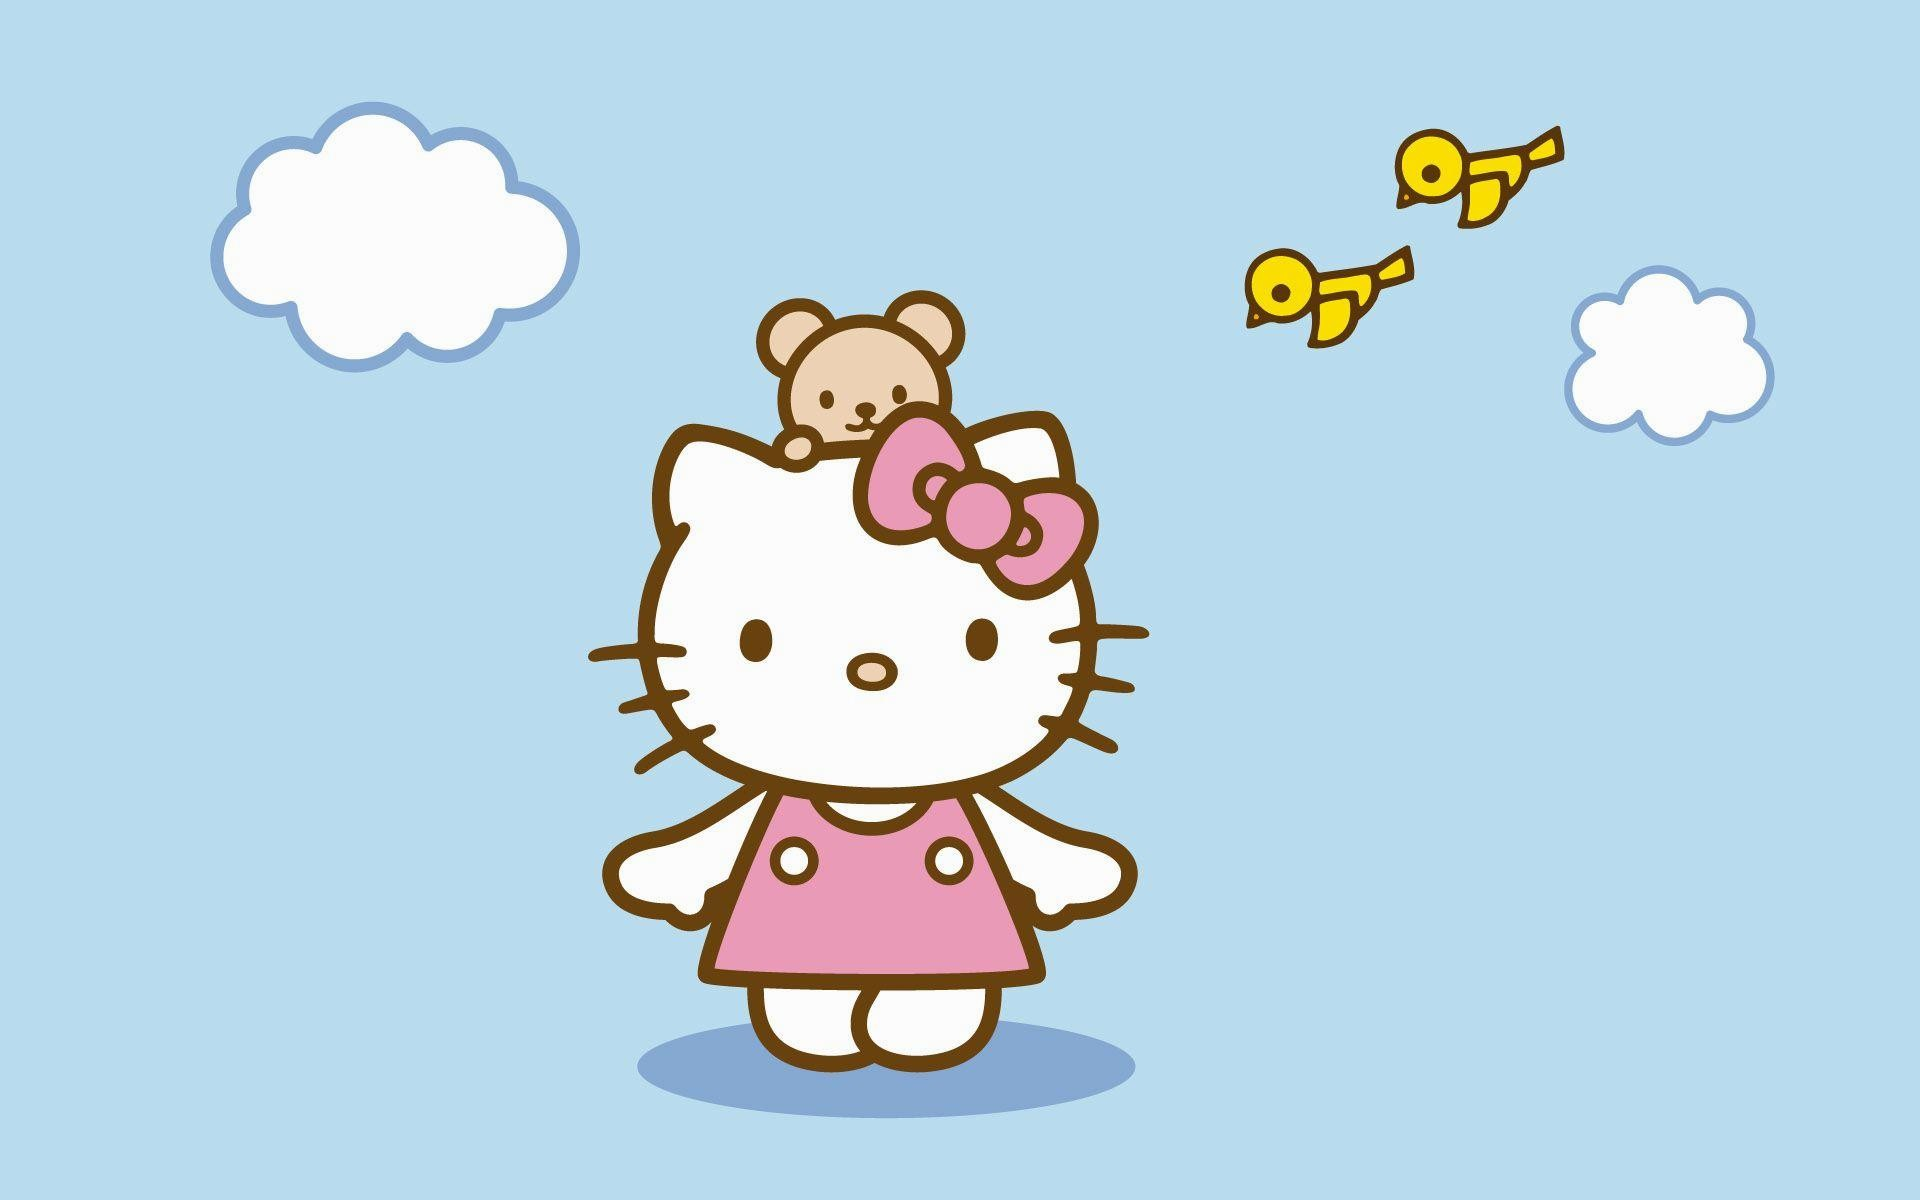 Who android wallpaper pictures of snow free hello kitty wallpaper - 1920x1200 Wallpaper Wiki Pictures Hello Kitty Hd Download 1